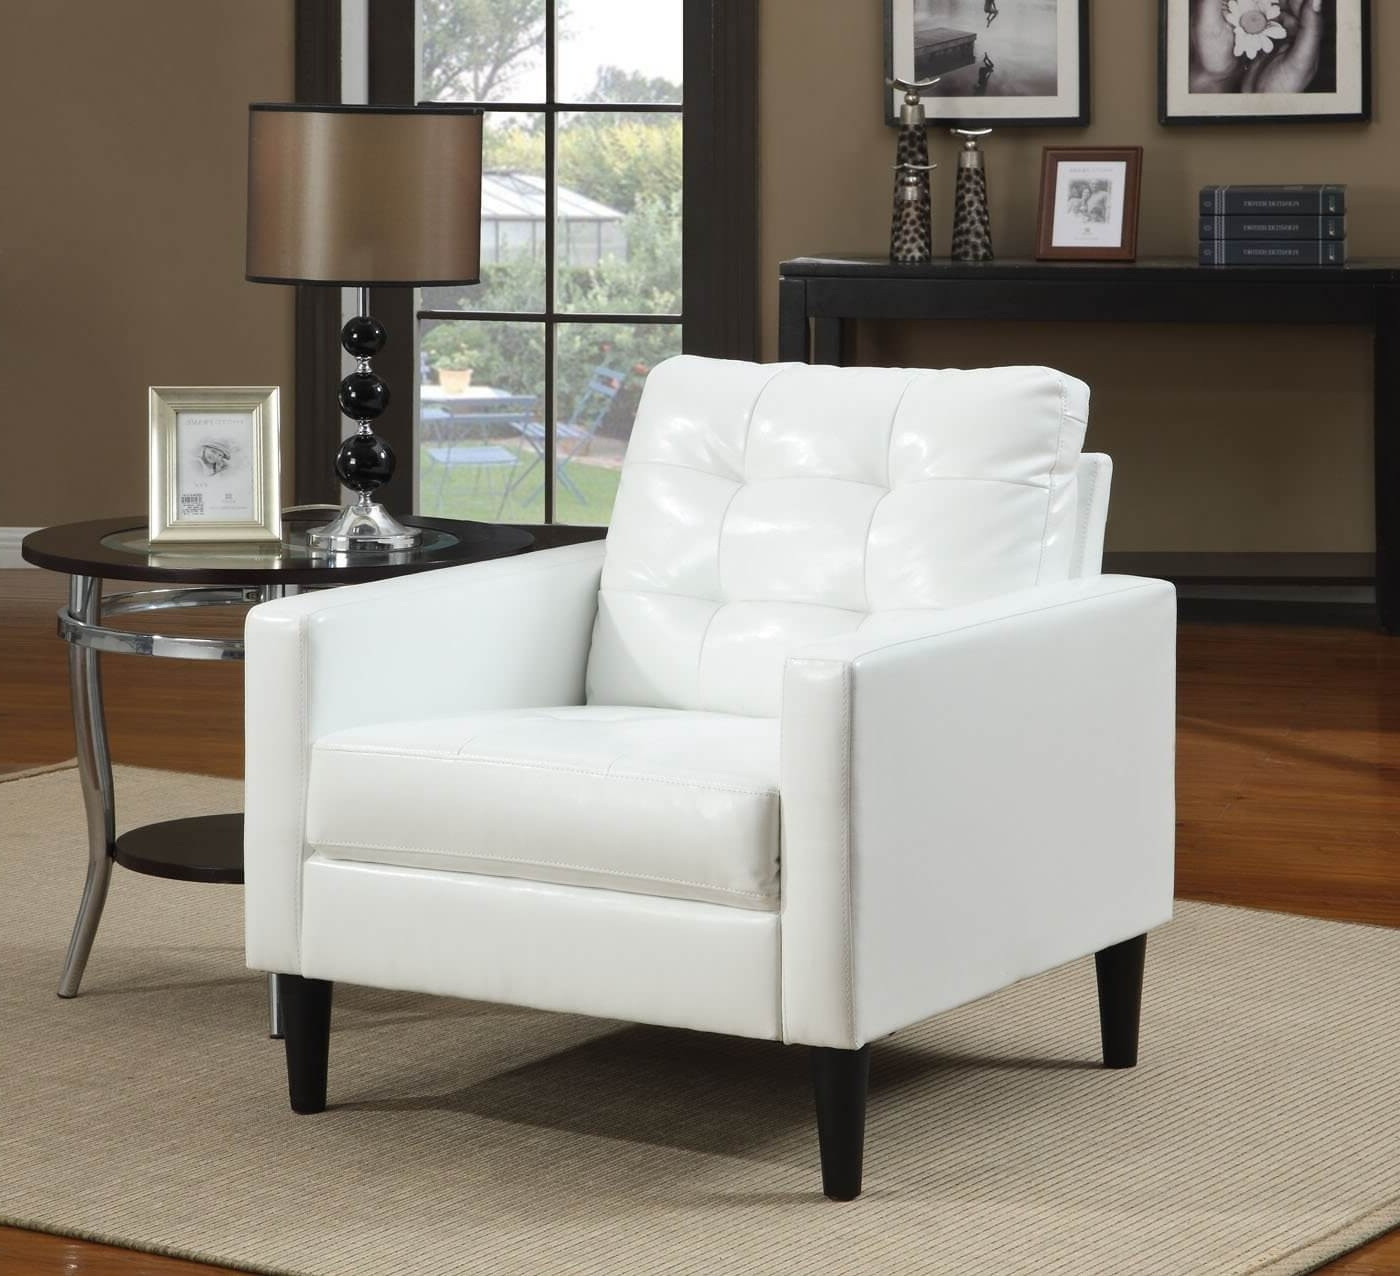 Accent Sofa Chairs Intended For Current 37 White Modern Accent Chairs For The Living Room (View 11 of 20)